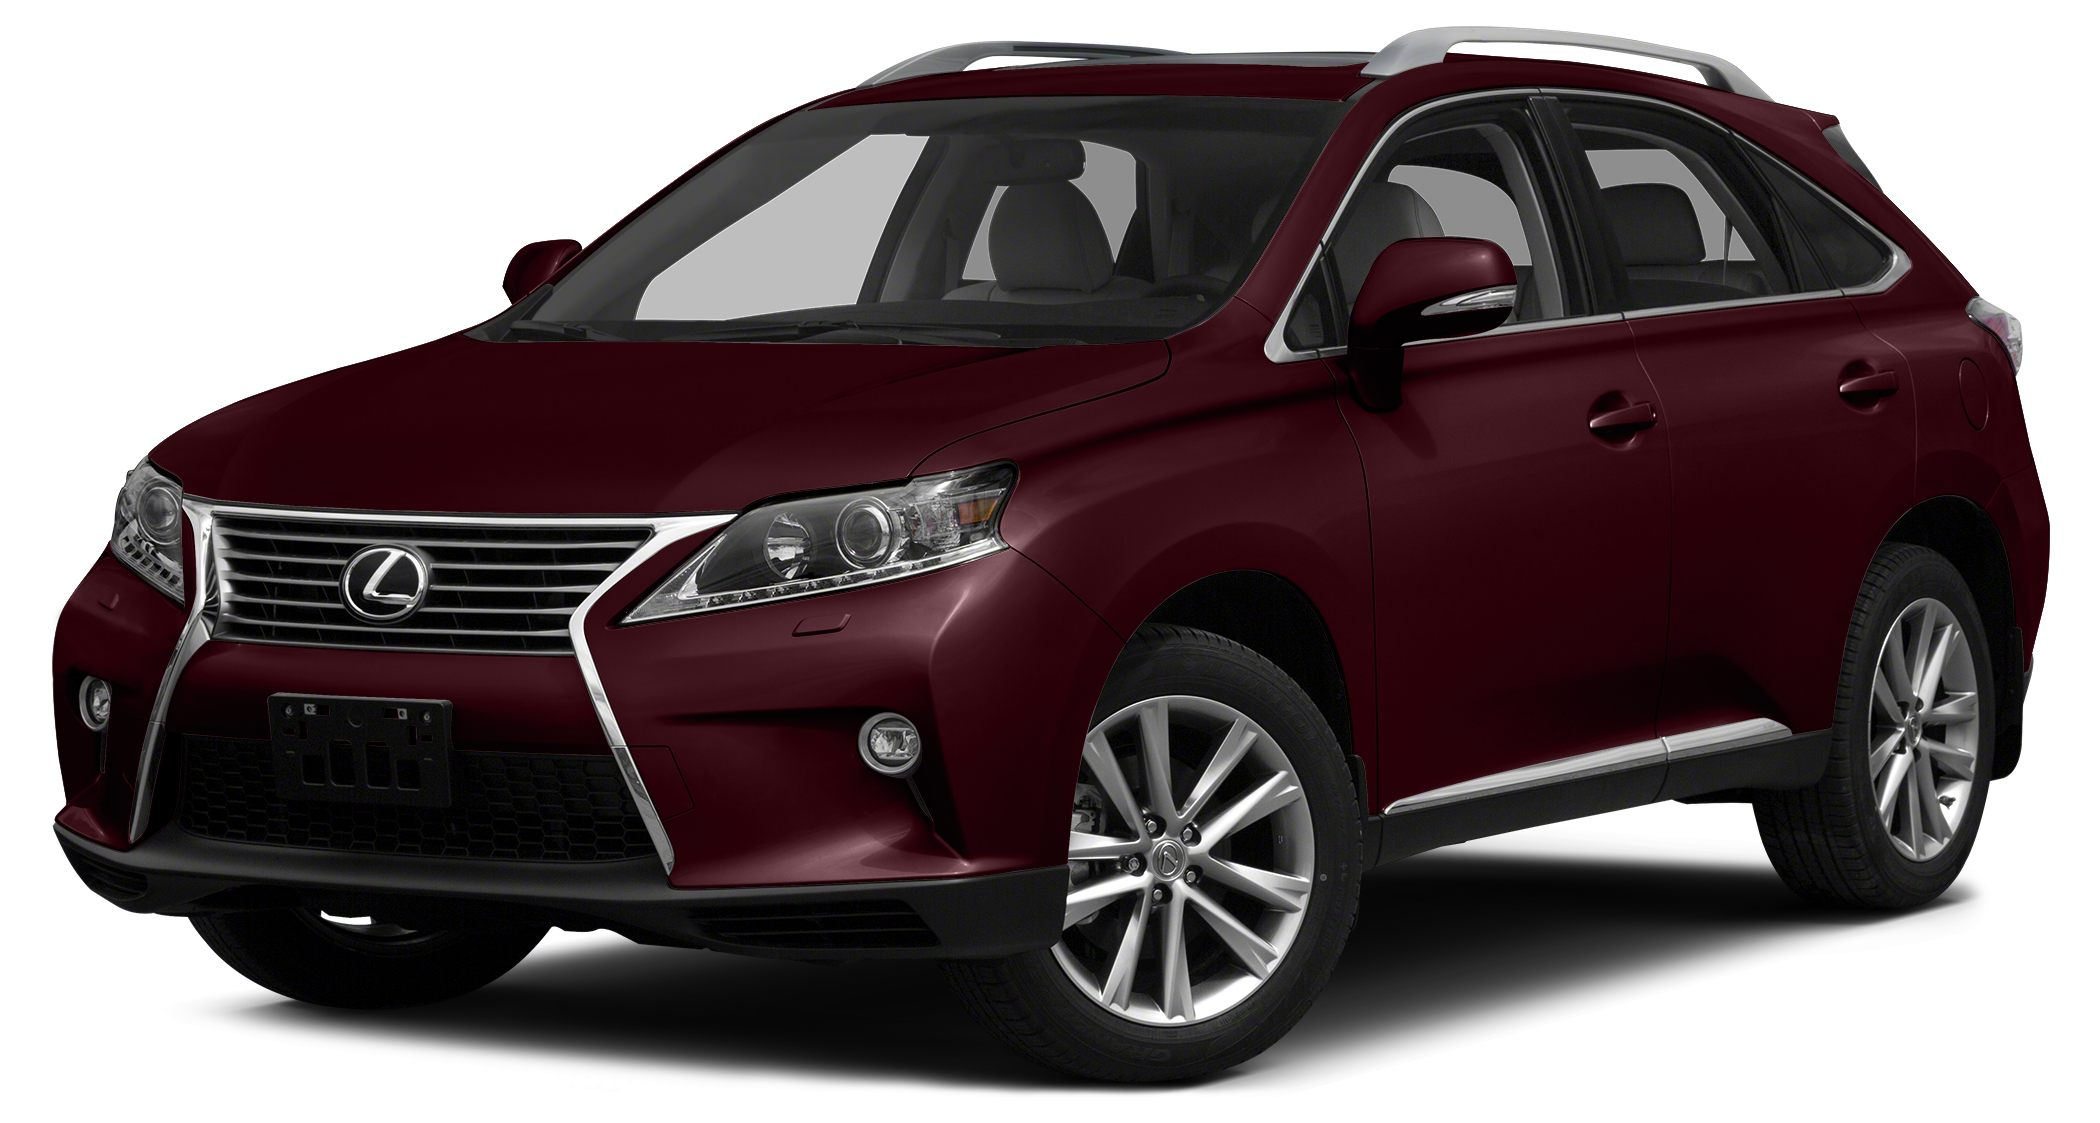 2015 Lexus RX 350 Base Priced below KBB Fair Purchase Price 35L V6 DOHC Dual VVT-i 24V Clean CAR